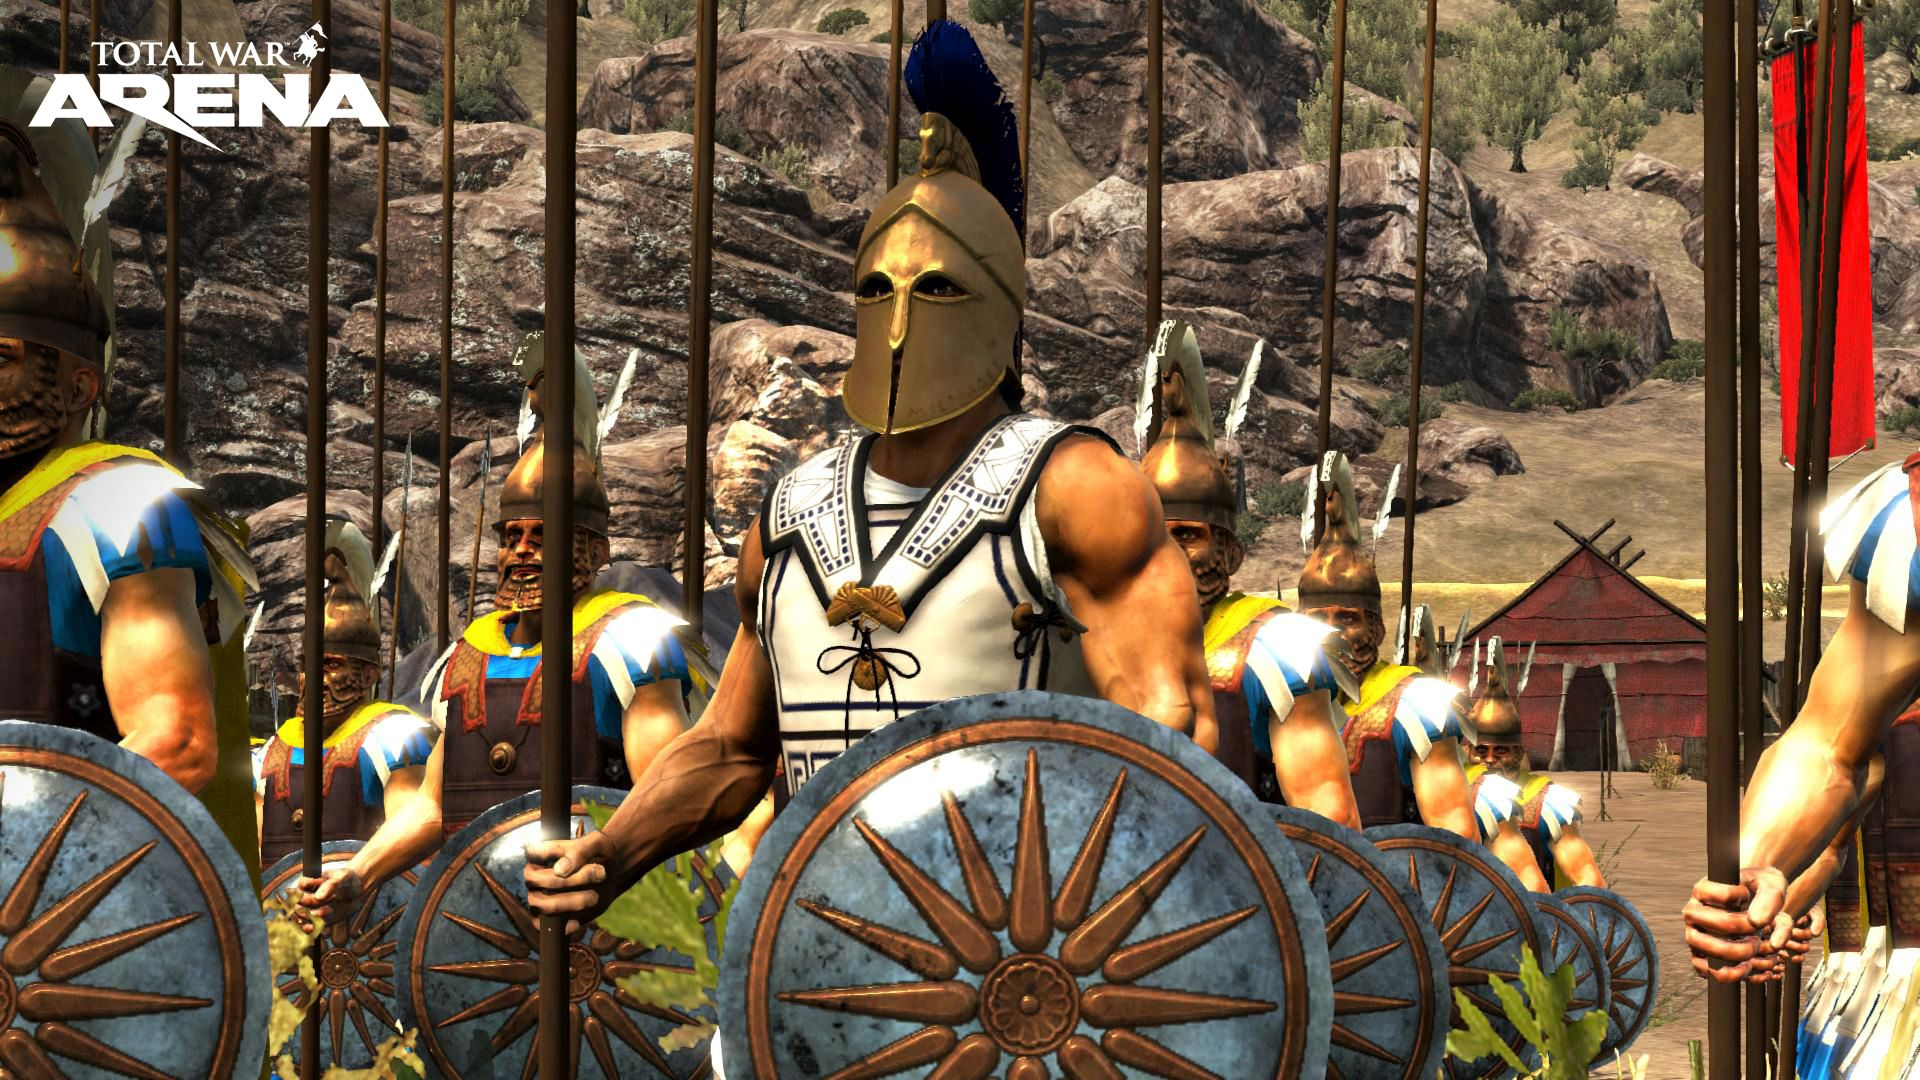 Total War Arena Screens 08